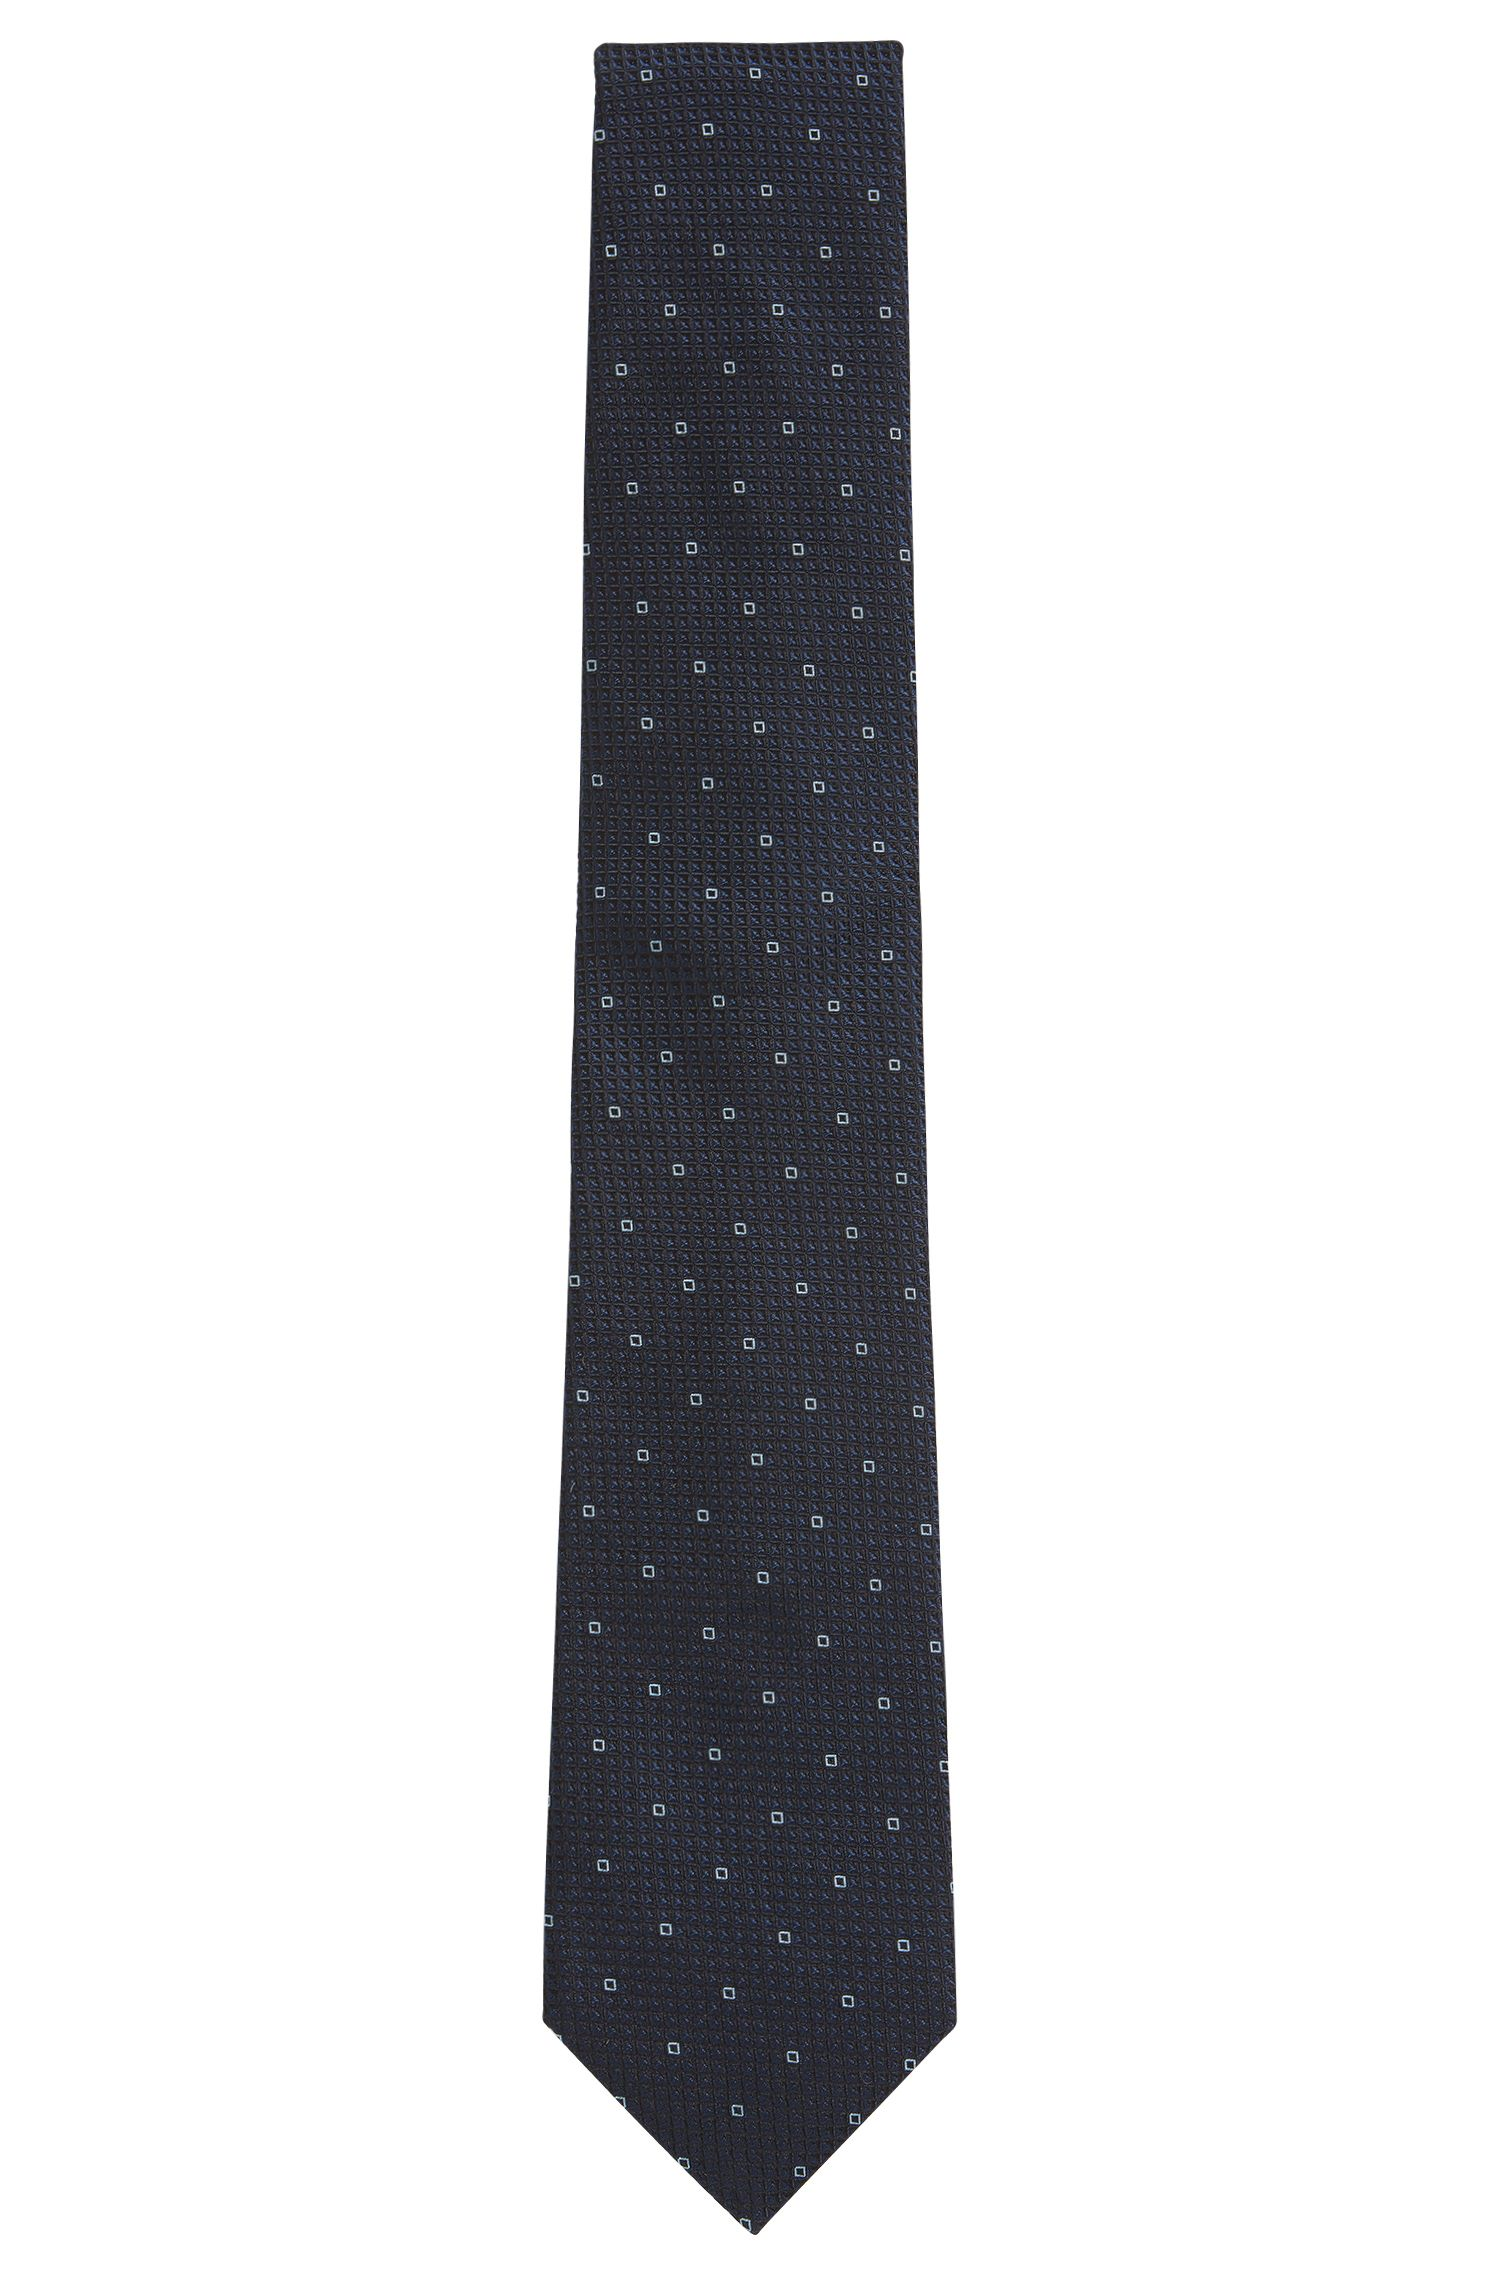 Patterned silk jacquard tie made in Italy